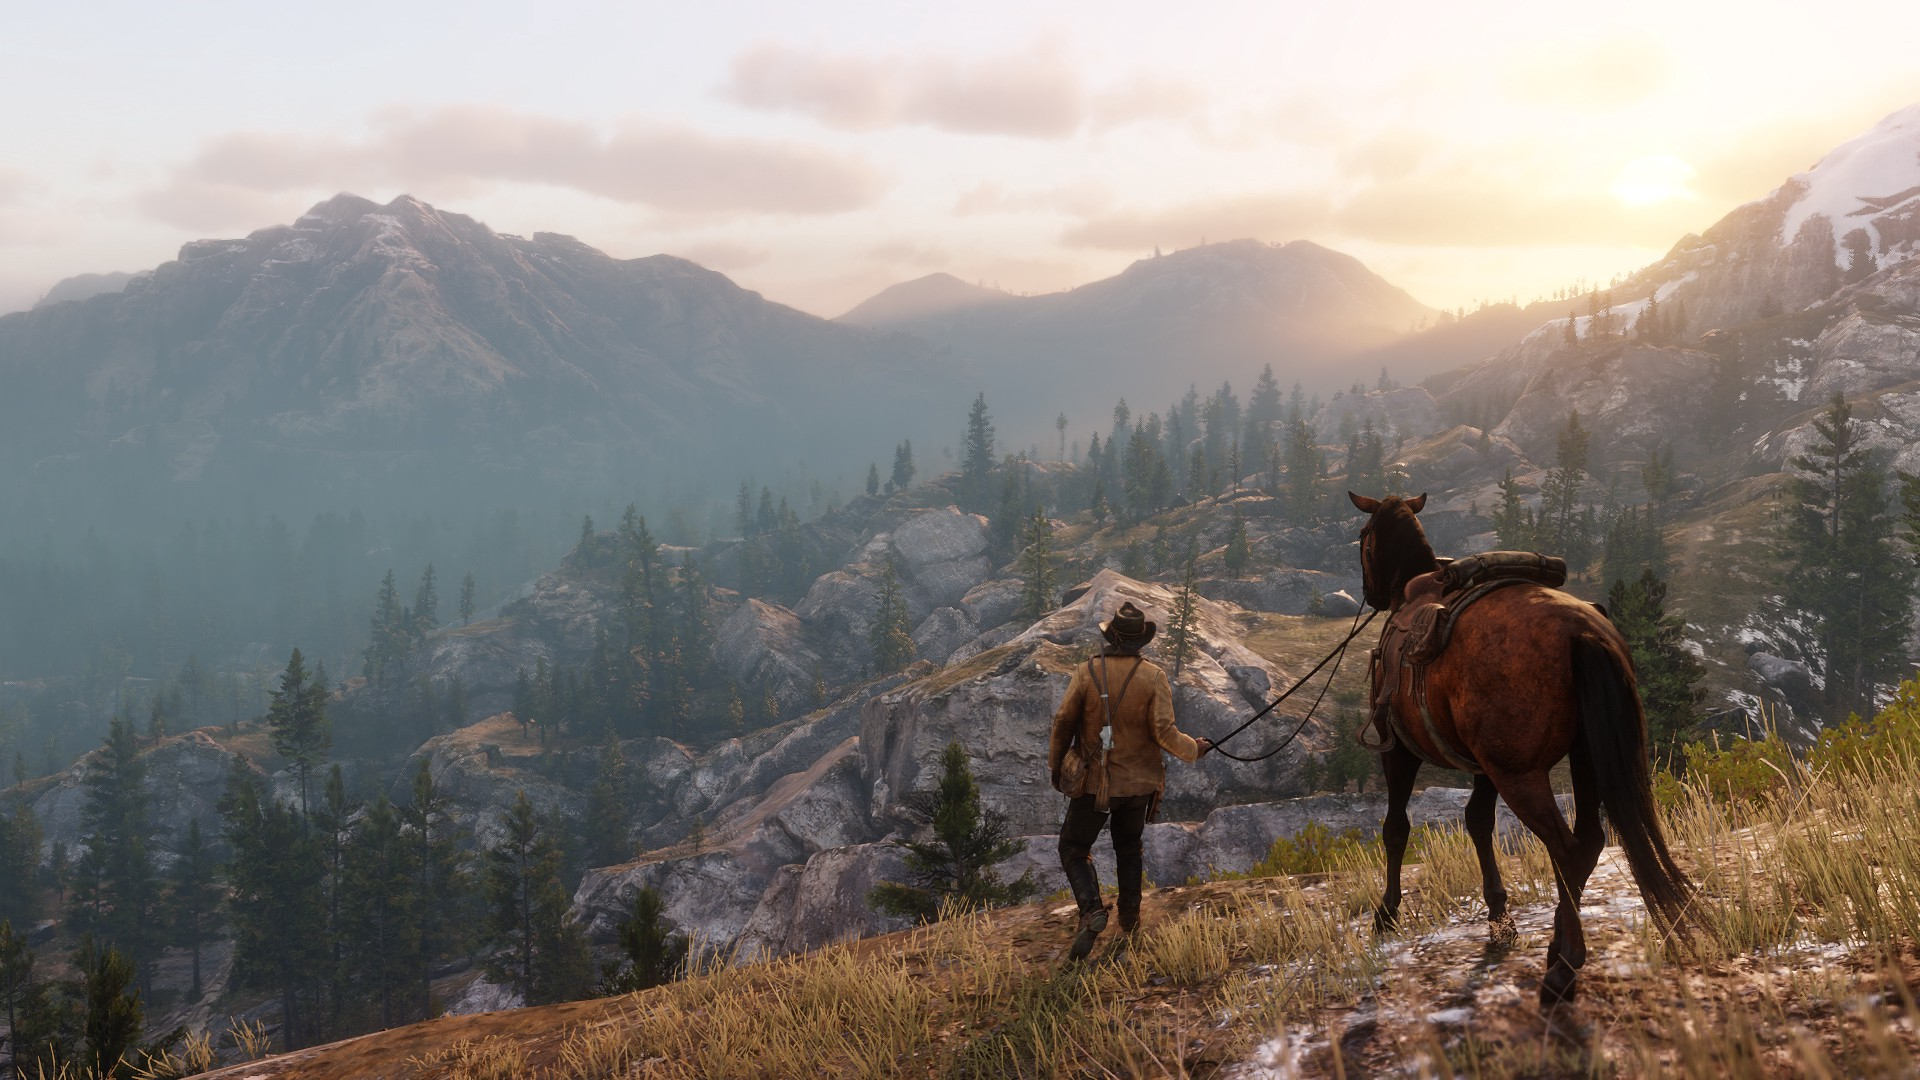 A screenshot from the video game 'Red Dead Redemption 2' featuring a cowboy character and his horse walking into a valley.